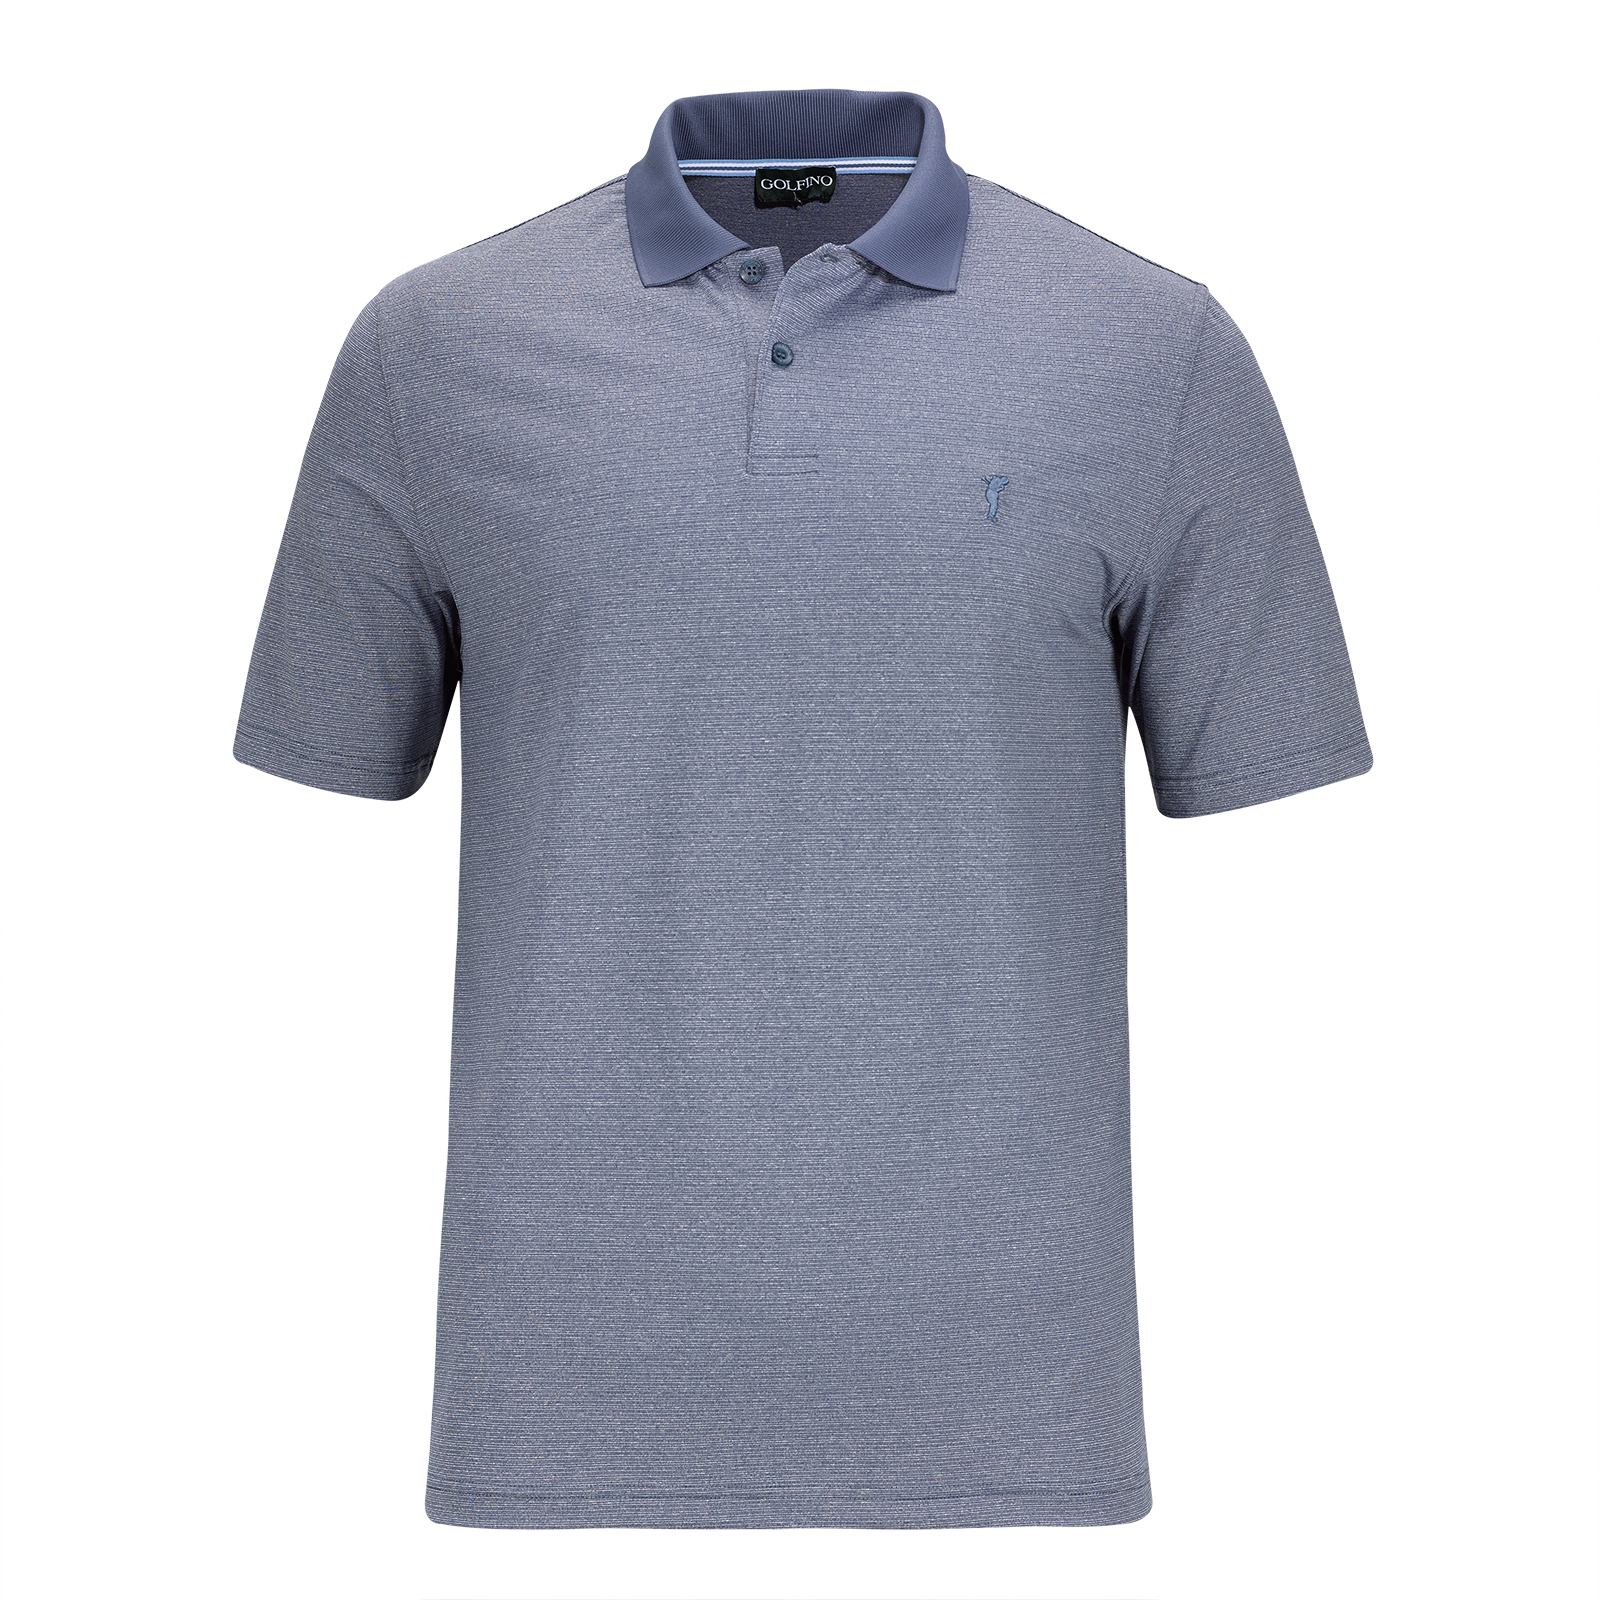 Herren Resort Wear Golfpolo mit Moisture Management